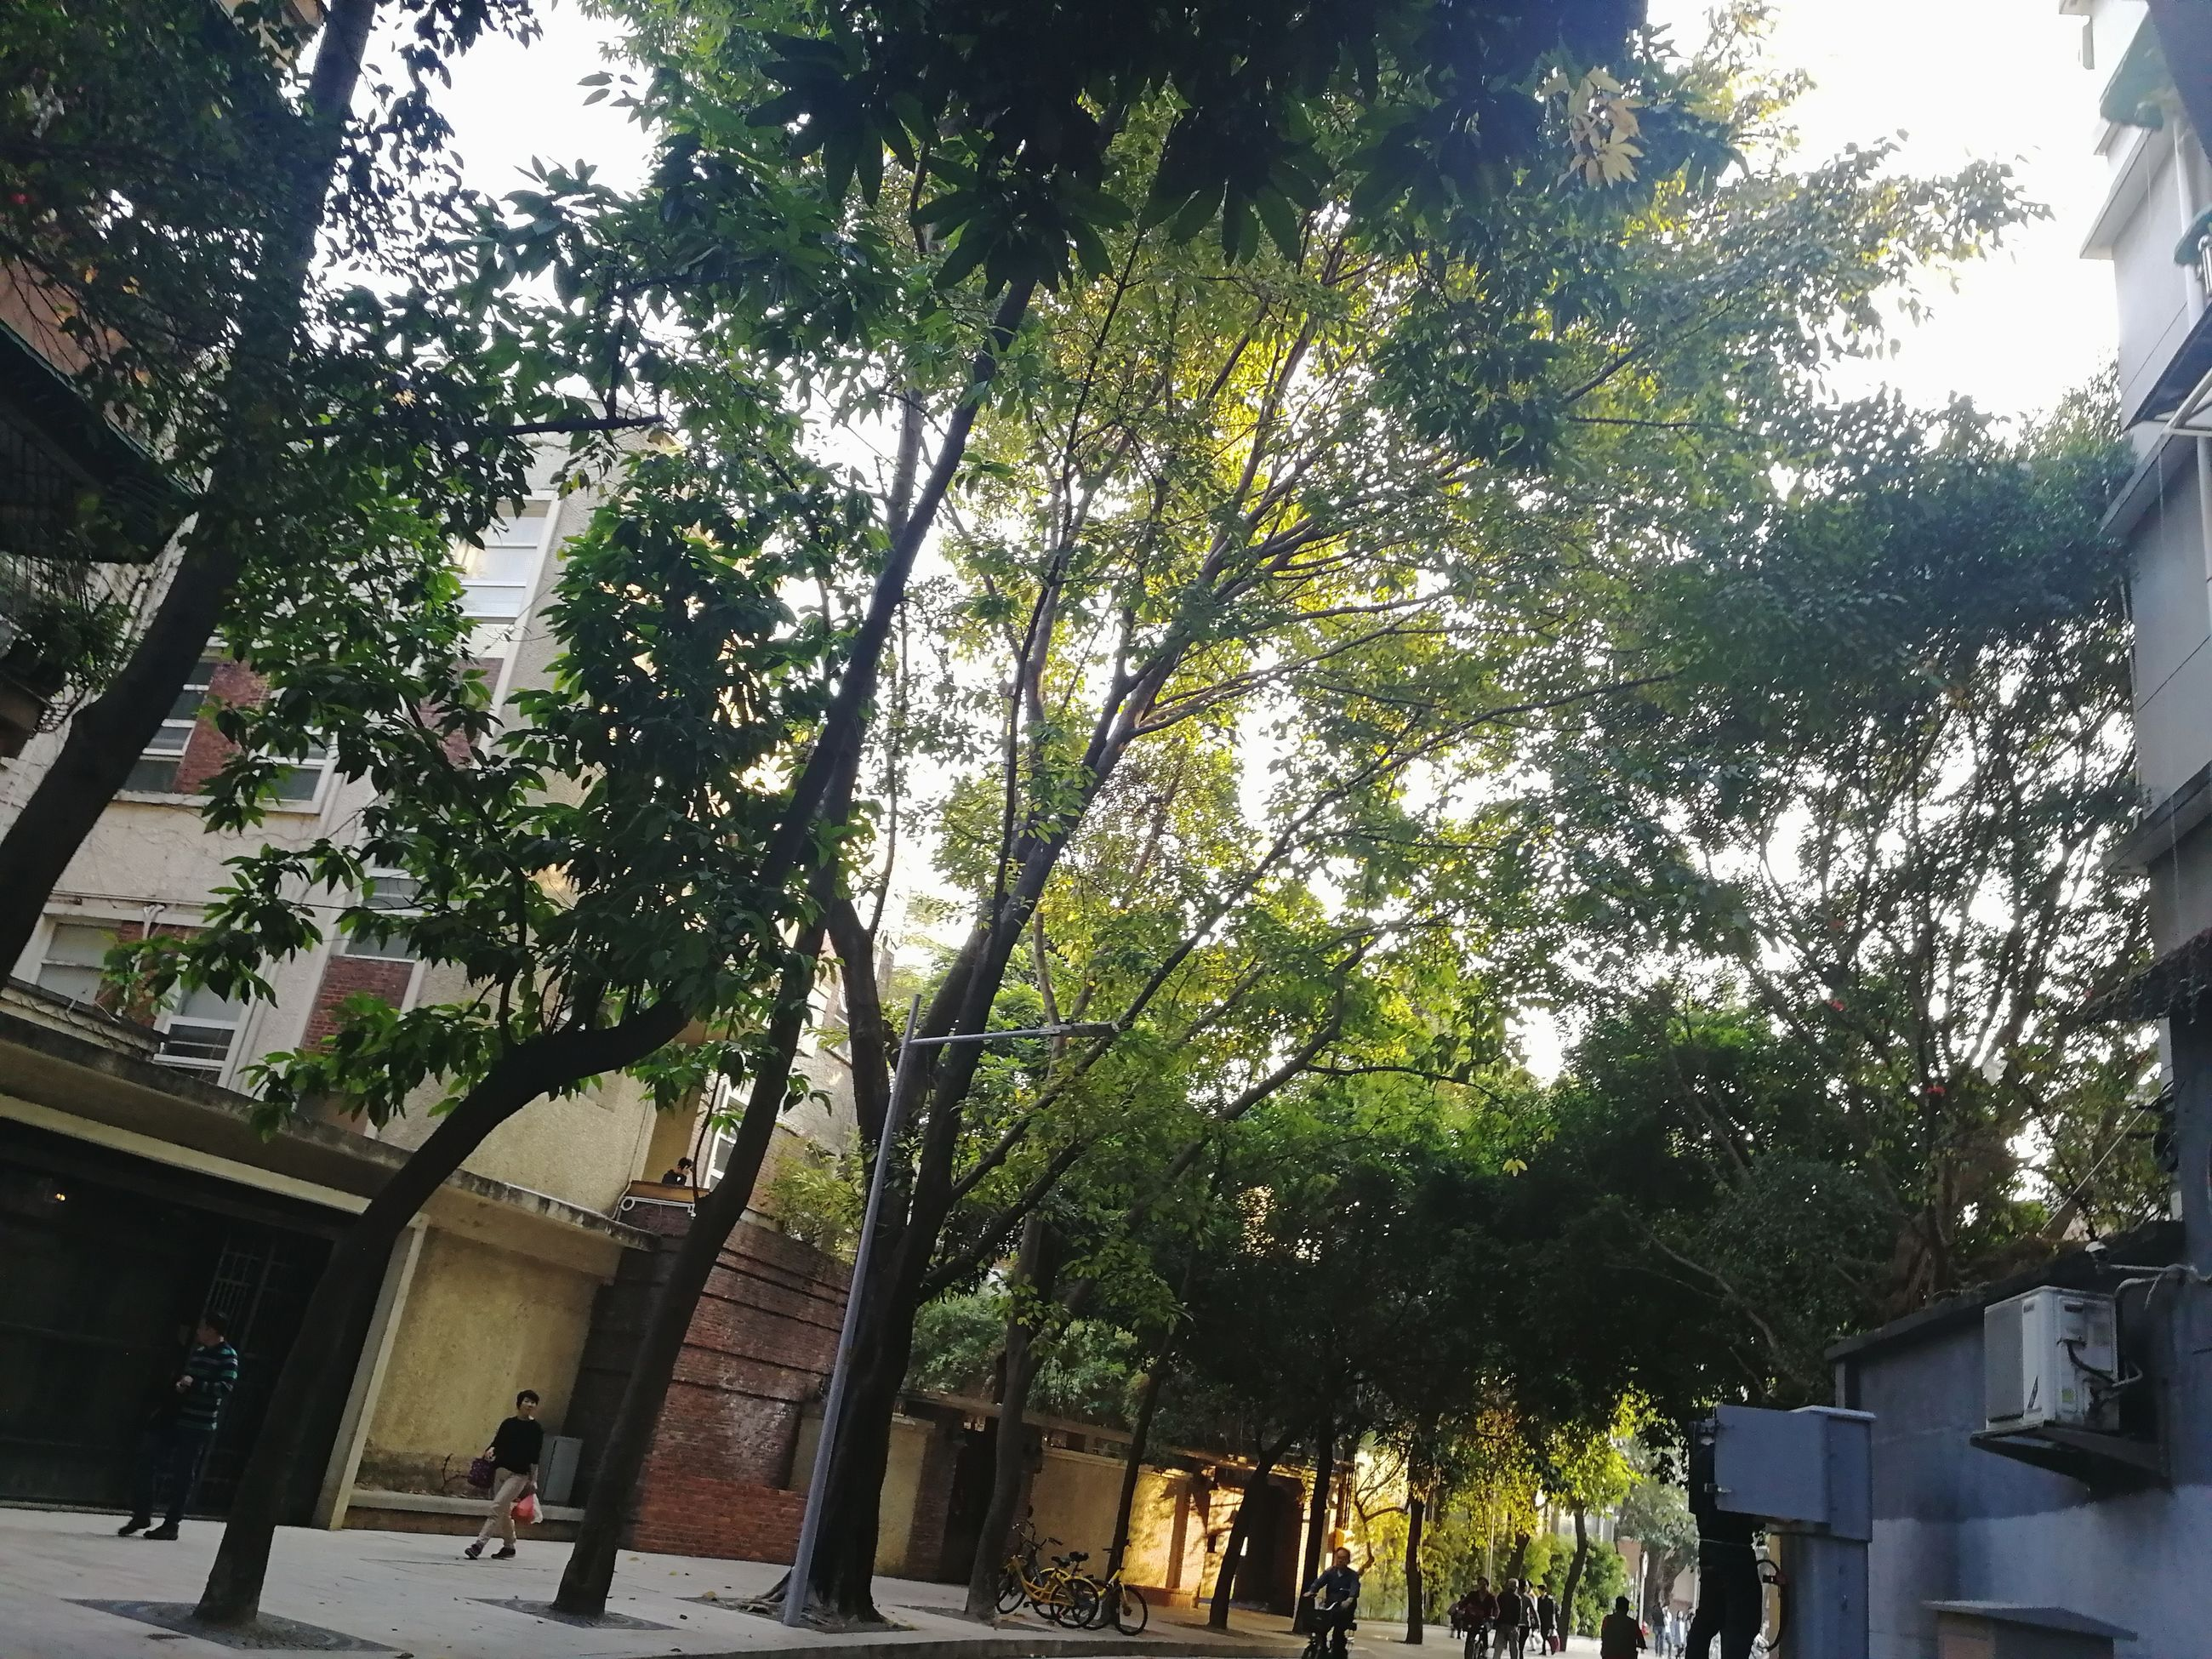 tree, growth, architecture, building exterior, built structure, outdoors, day, nature, city, no people